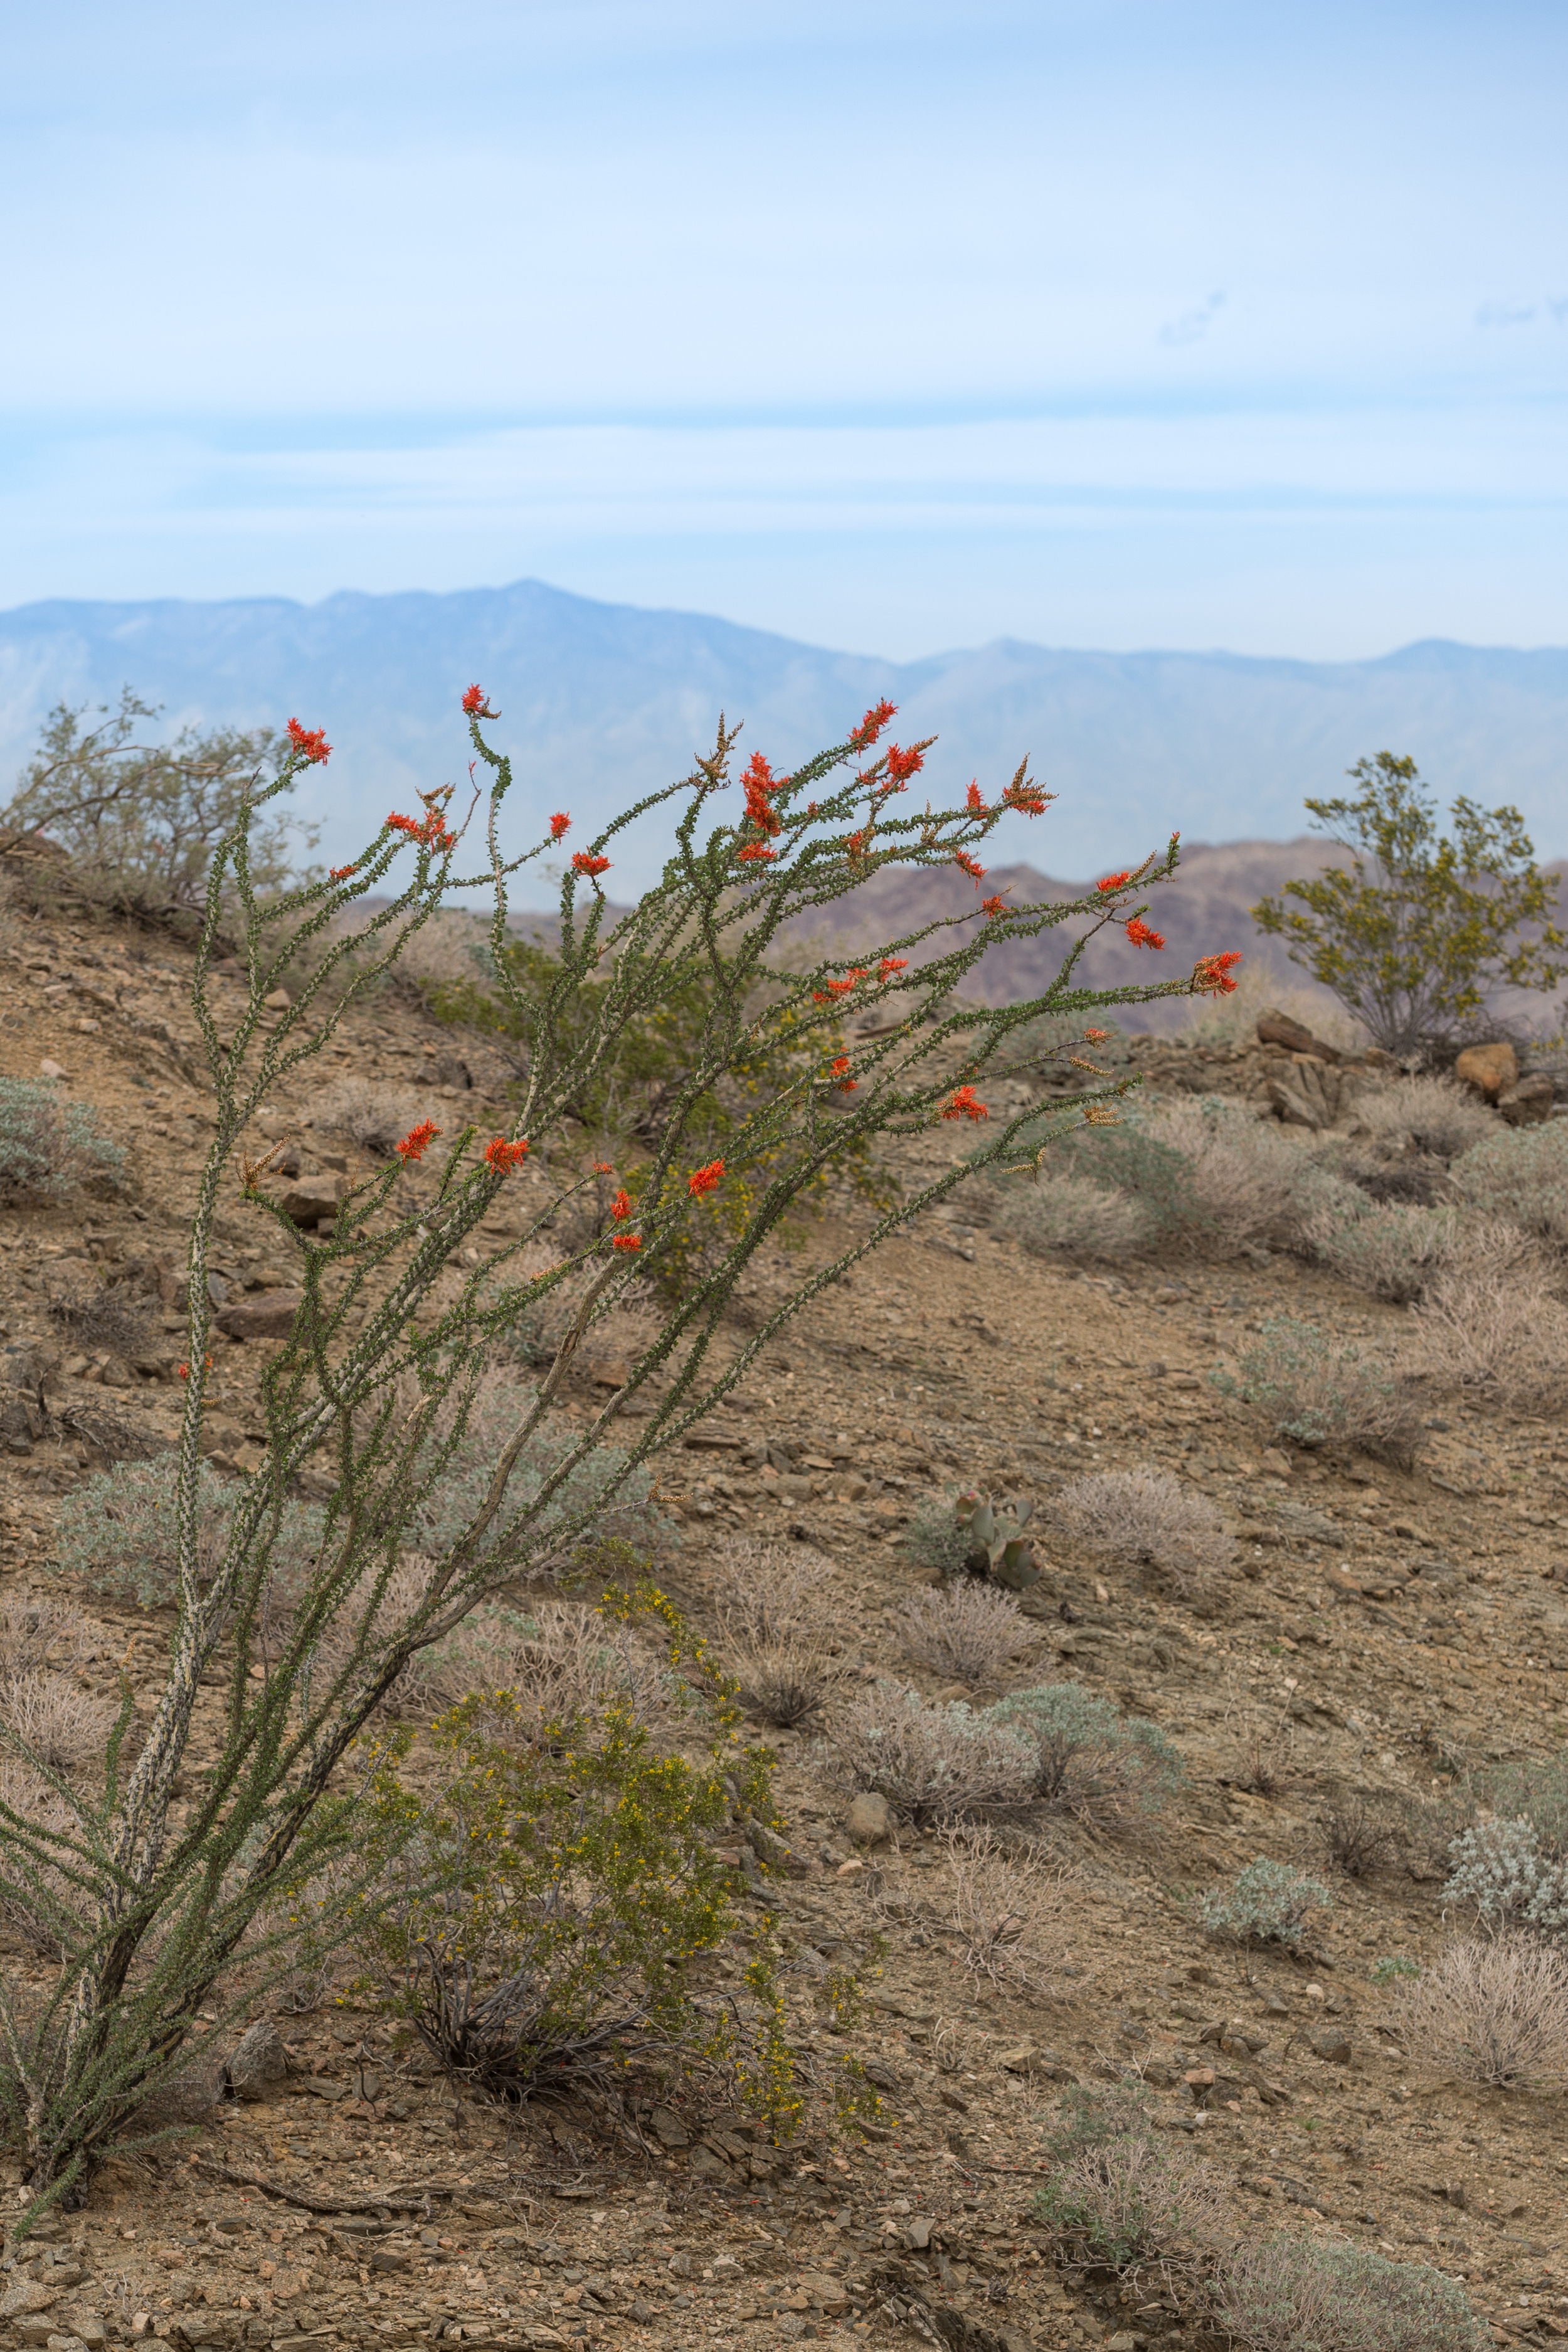 Blooming Ocotillo Plant above Coachella Valley.